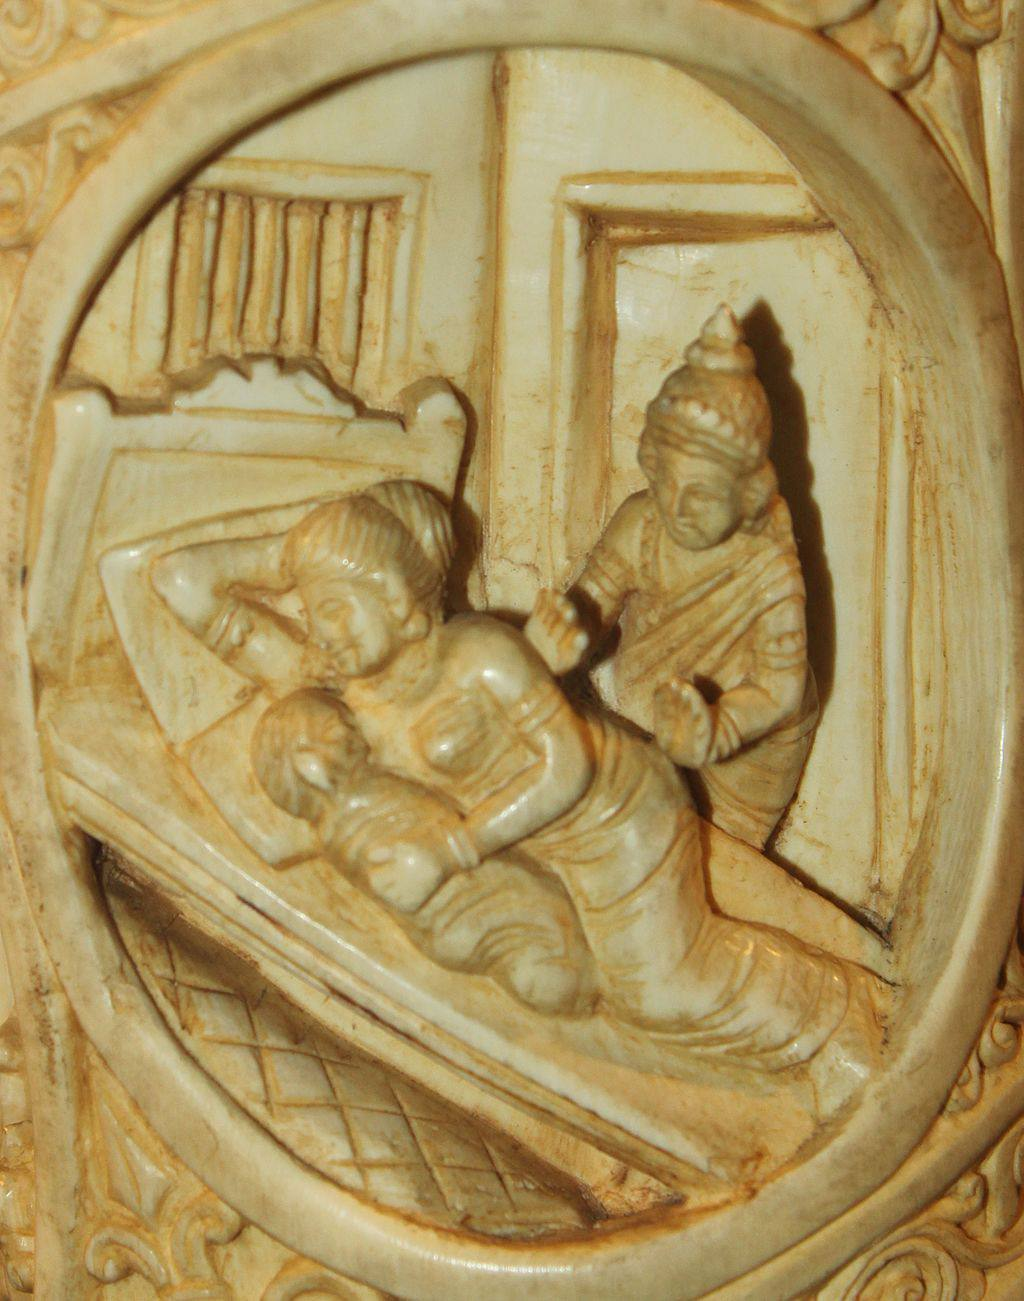 Ivory carving of Buddha leaving a woman and child sleeping in bed.